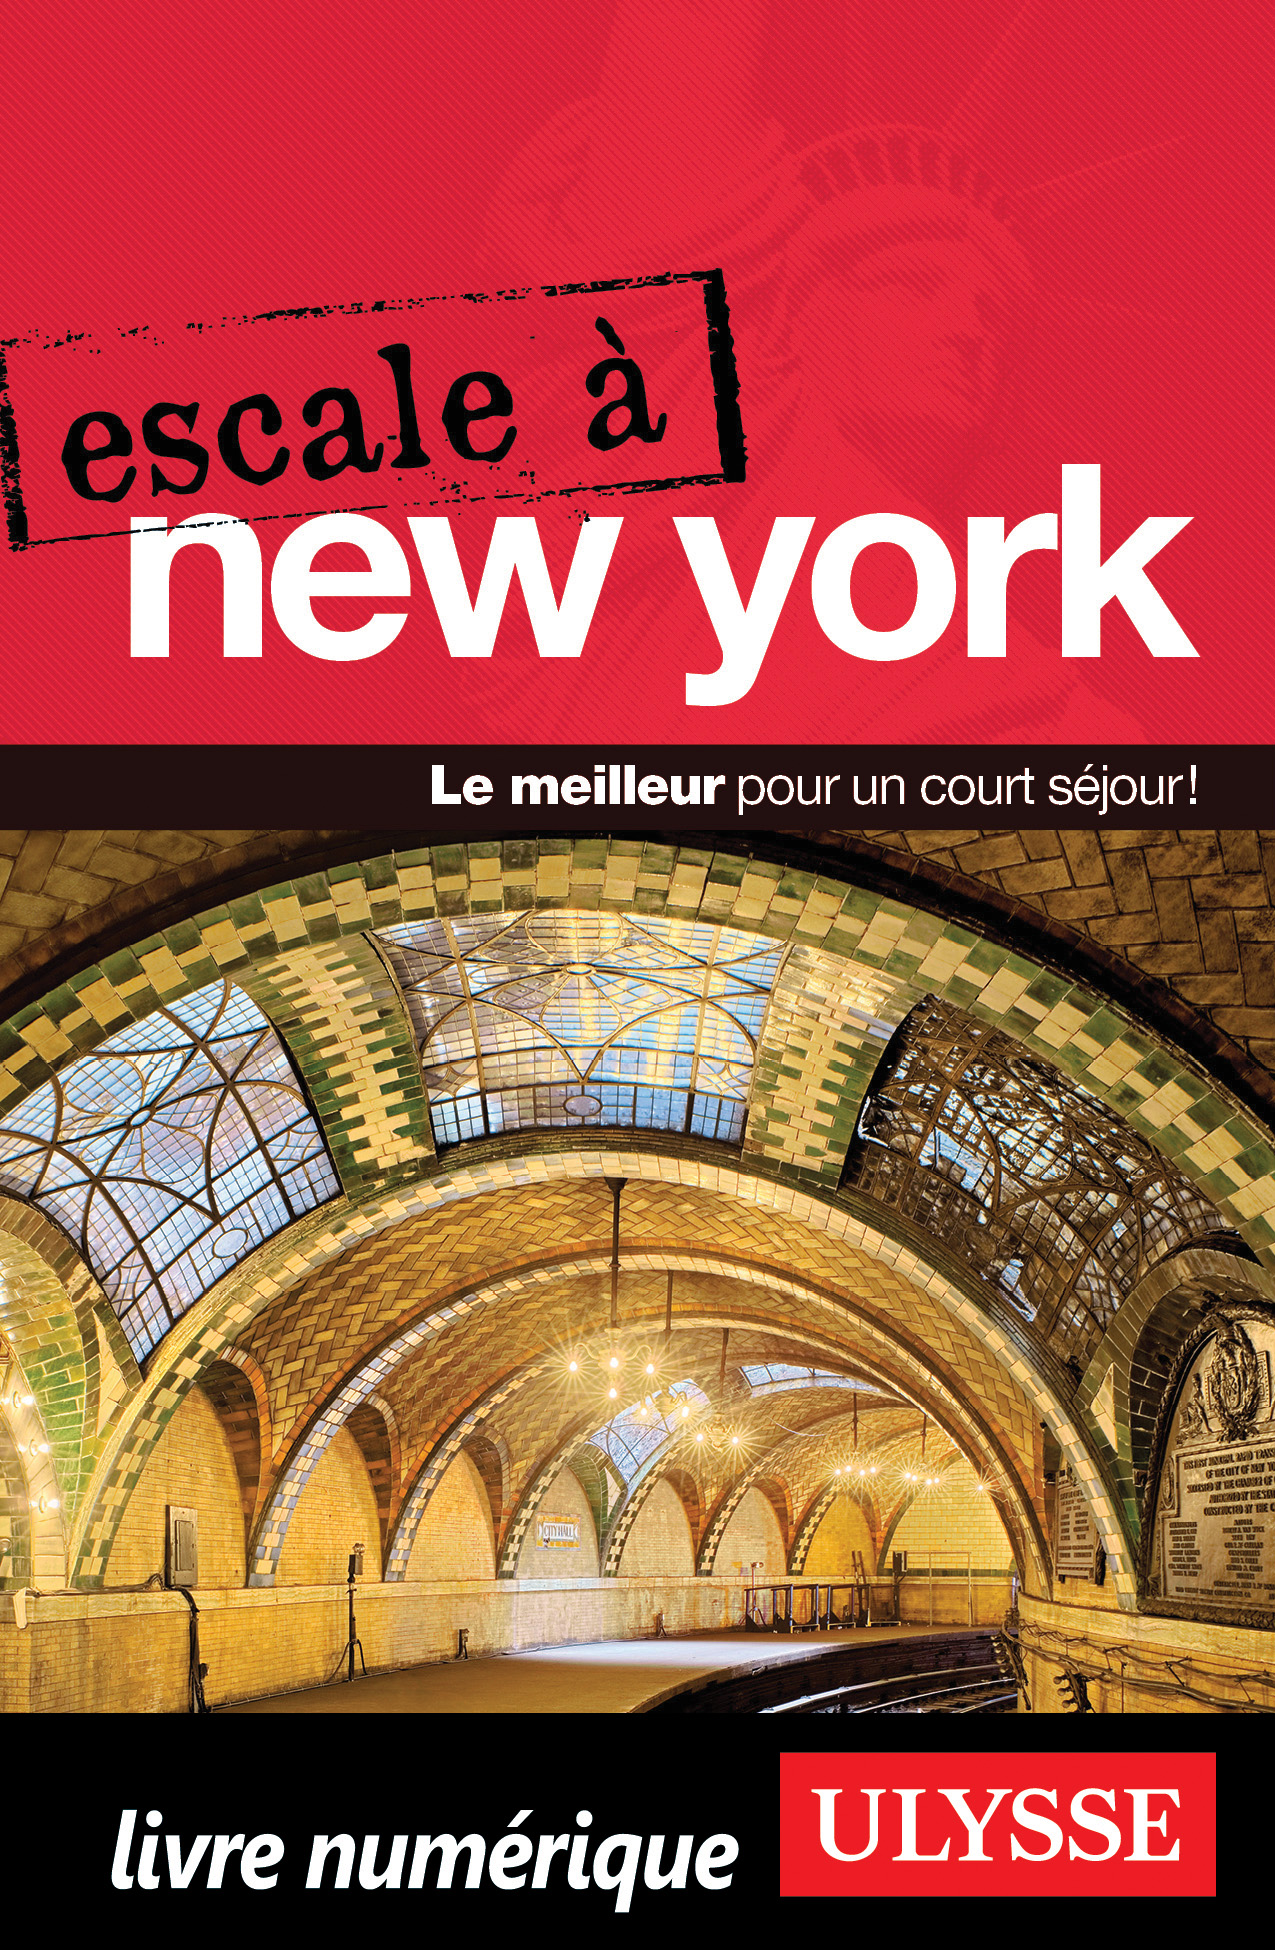 Vignette du livre Escale à New York